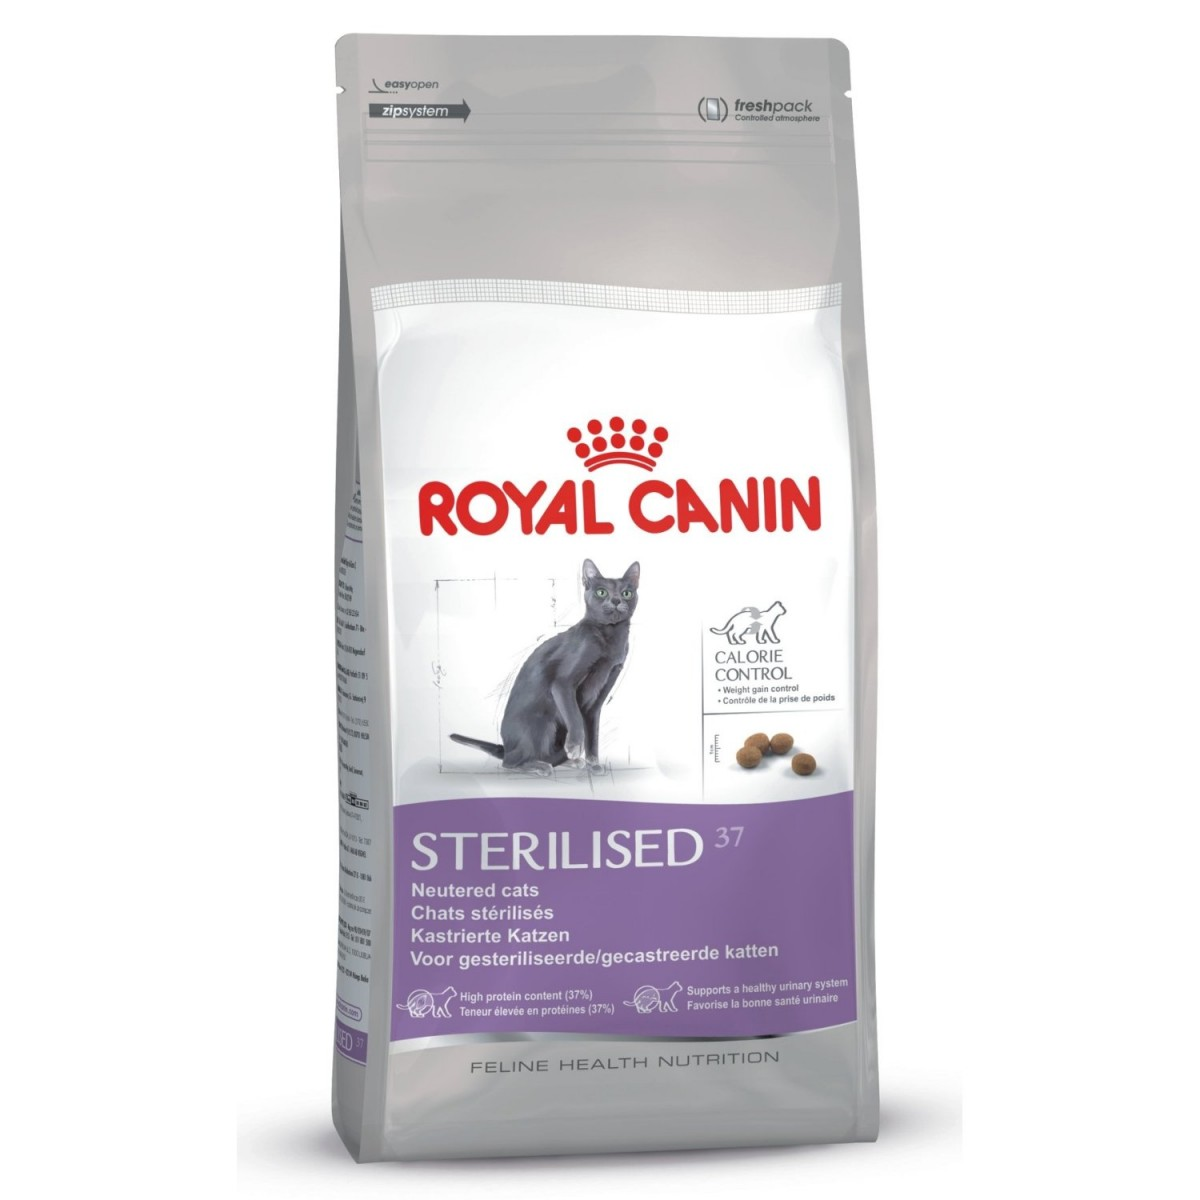 Royal Canin Sterilised 37 | 4kg Katzenfutter